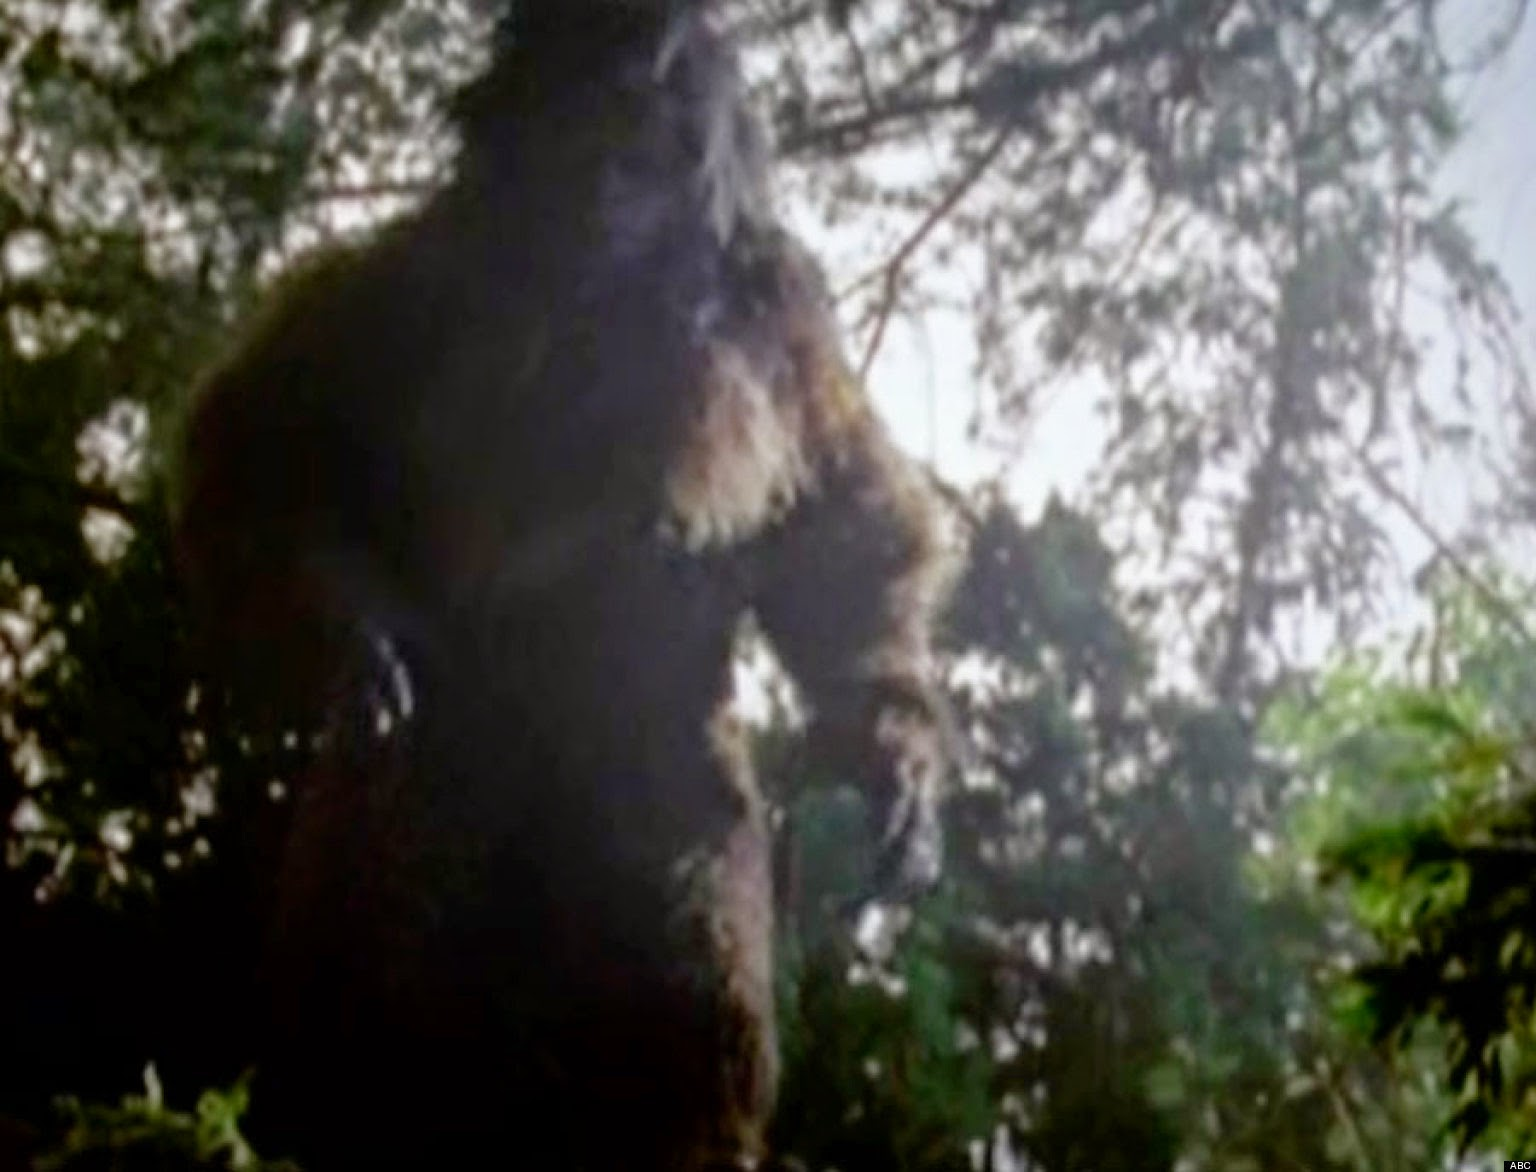 an argument in favor of existence of big foot yeti and sasquatch Big foot essay examples big foot, yeti and sasquatch 909 words 2 pages an argument in favor of existence of big foot, yeti and sasquatch 915 words.